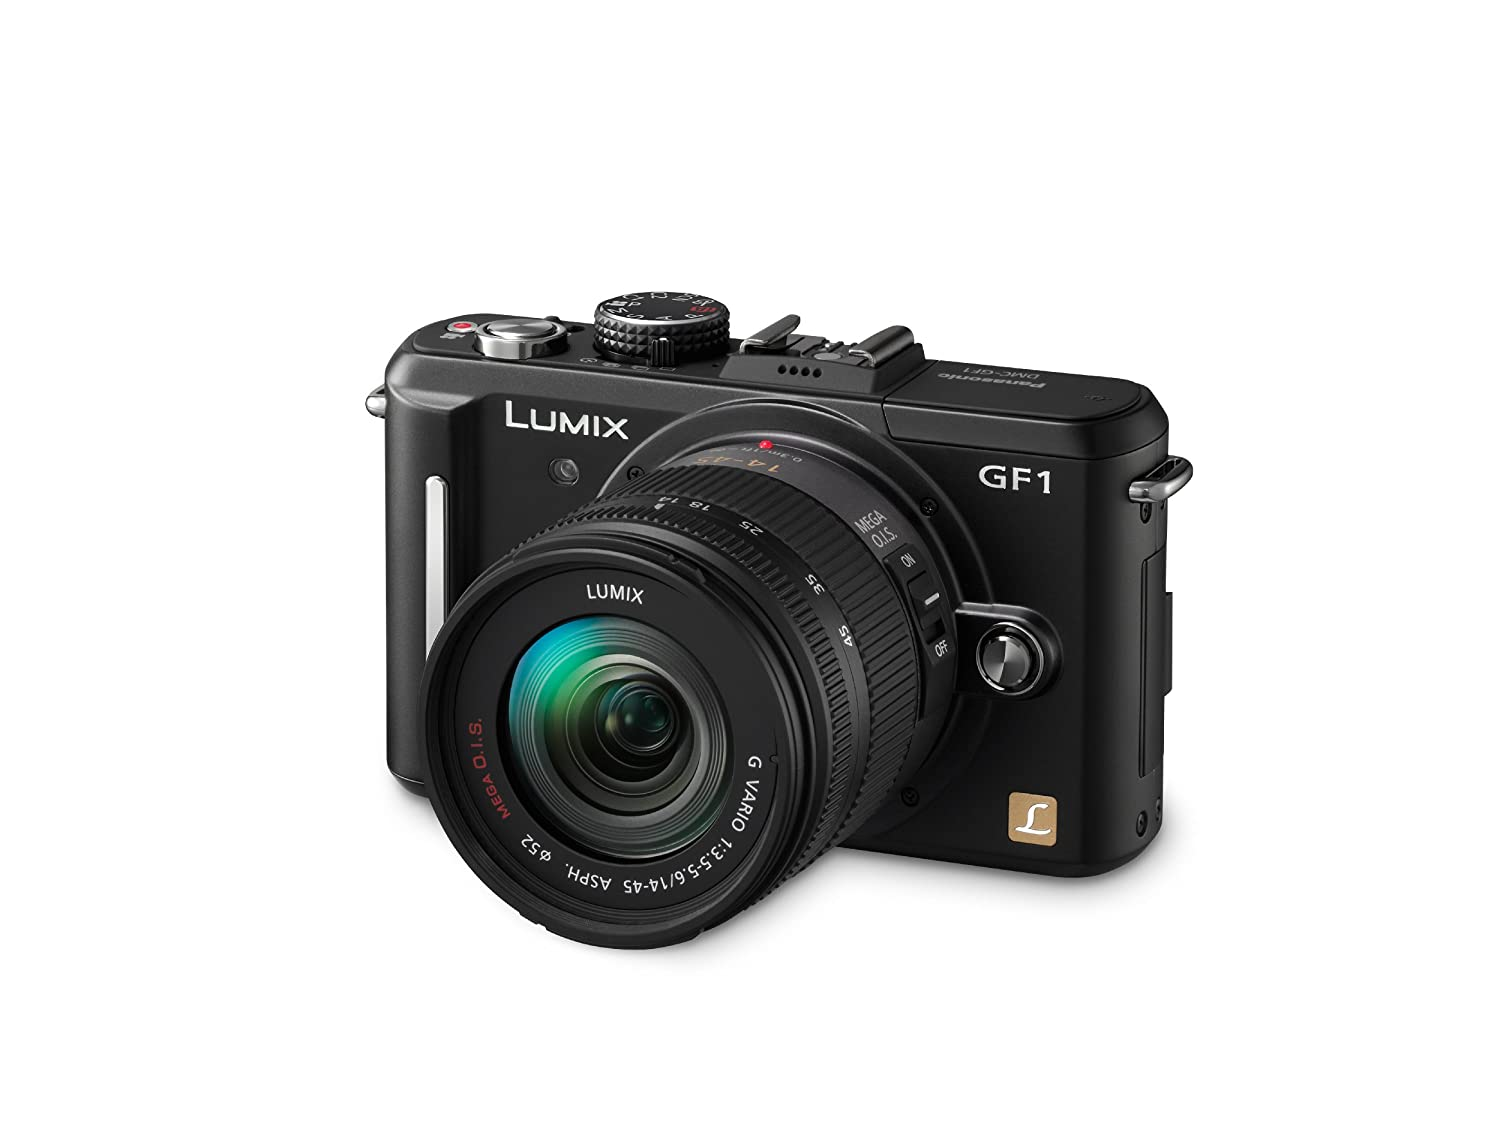 Panasonic Lumix Dmc Gf1 121mp Micro Four Thirds Camera Flash Circuit There Is Only One Simple Connection To The Interchangeable Lens Digital With 14 45mm Compact System Cameras